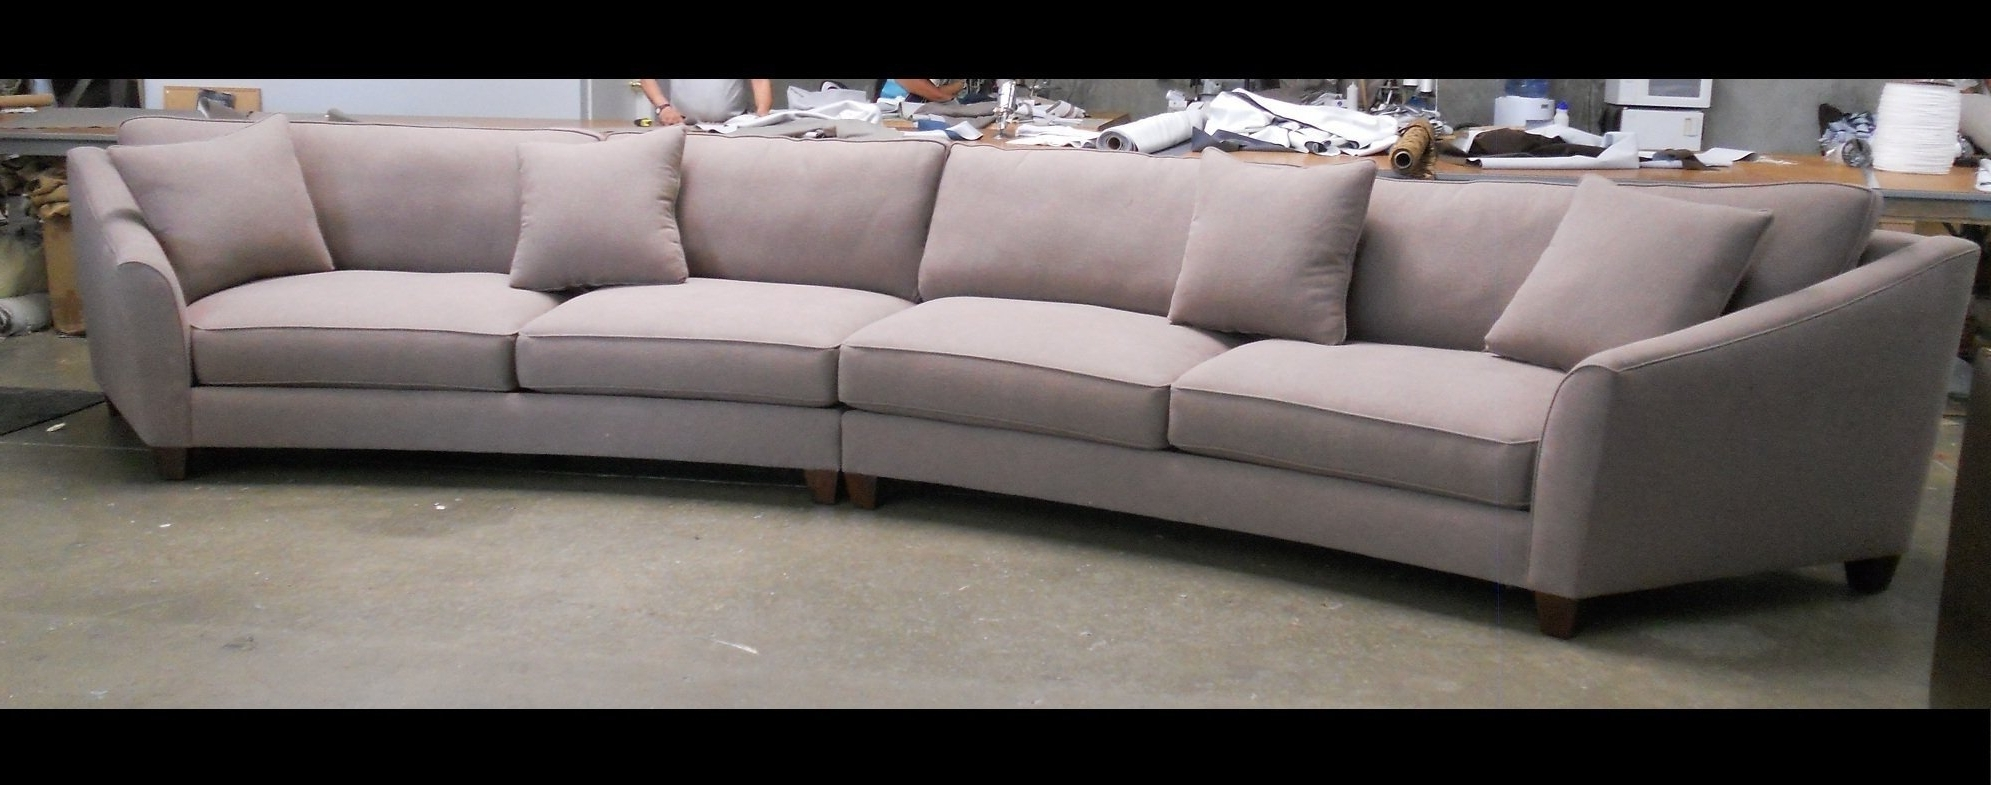 Preferred Furniture : 5060 Recliner Sectional Sofa Costco $699 Corner Couch Inside Joining Hardware Sectional Sofas (View 17 of 20)